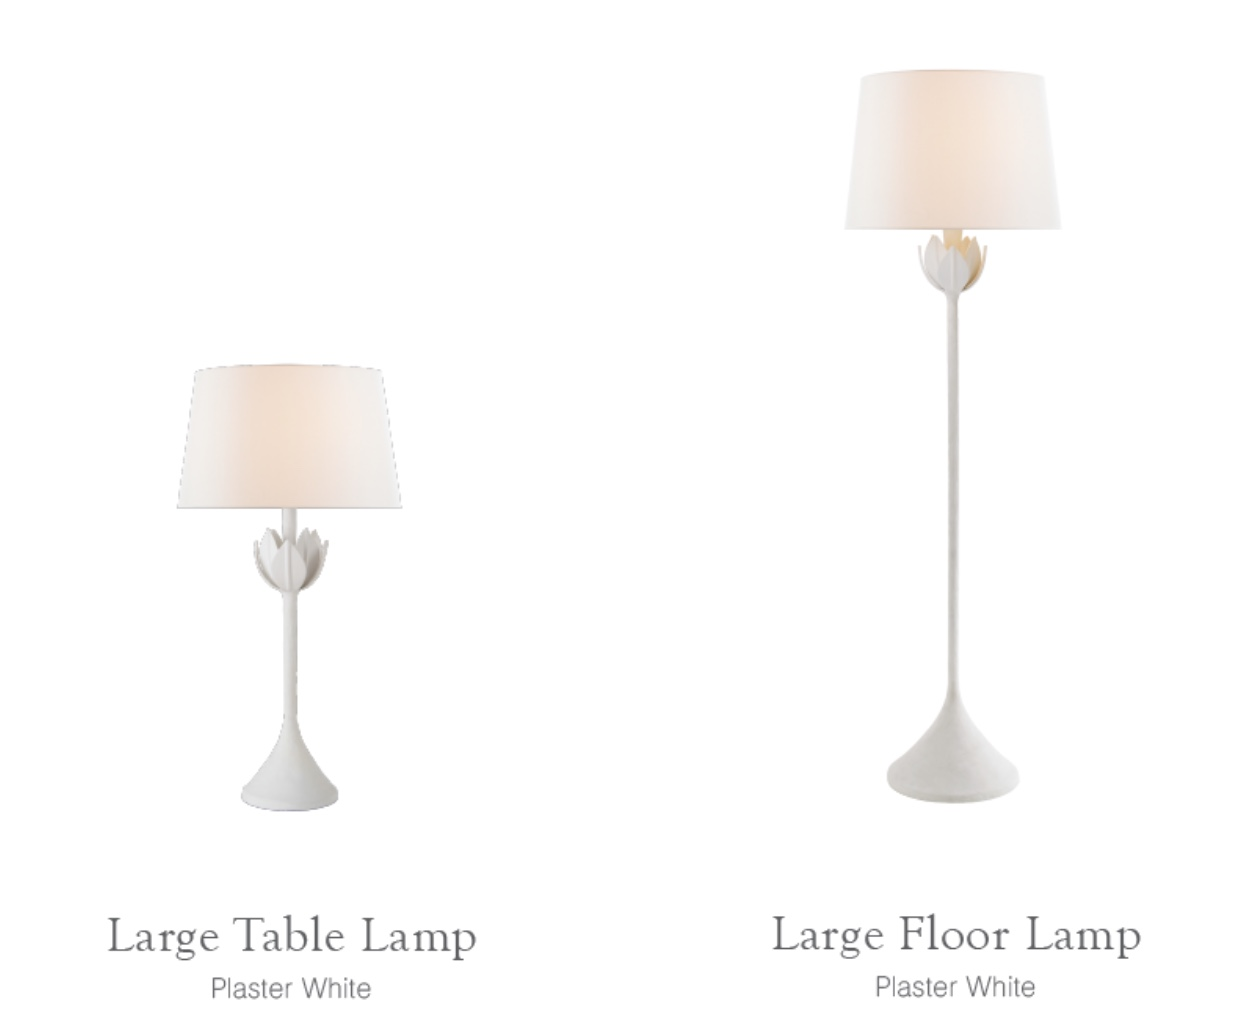 Again Visual Comfort lamps so simple and chic